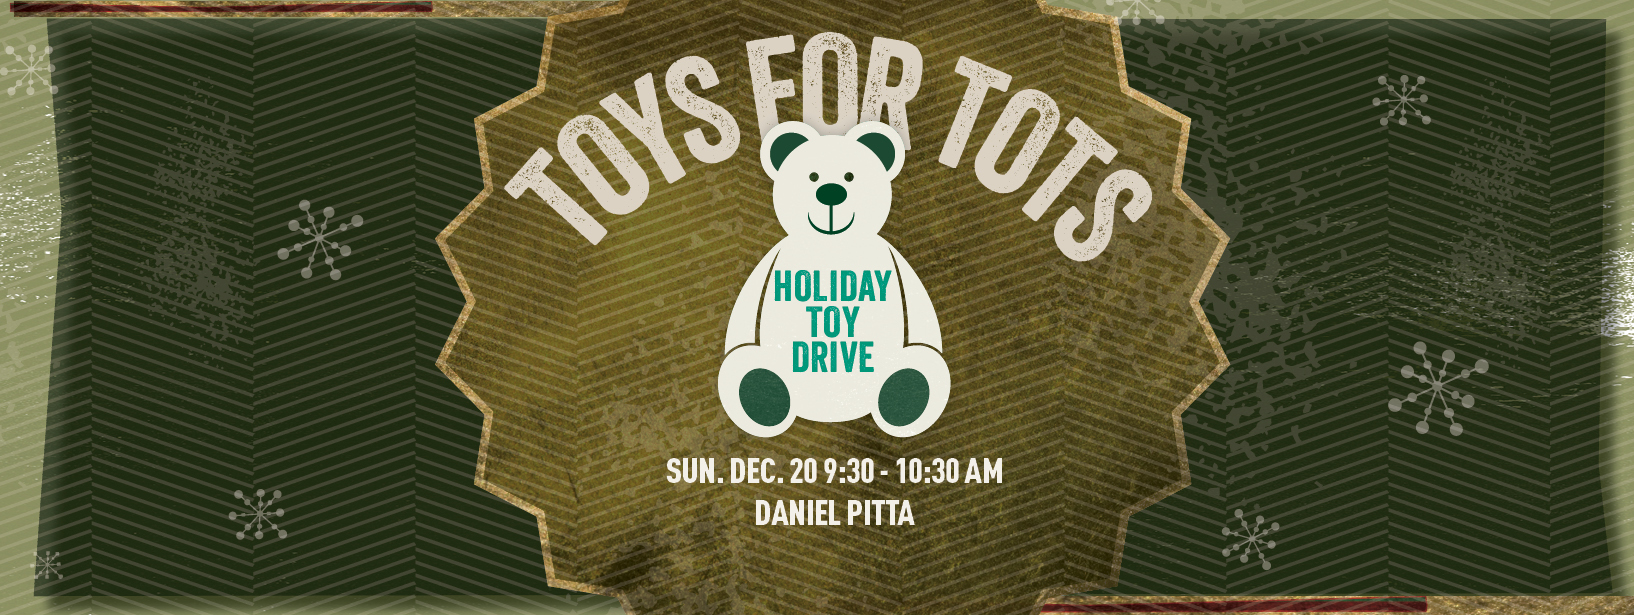 Toys For Tots Raffle : Toys for tots fundraiser with daniel pitta fitness events